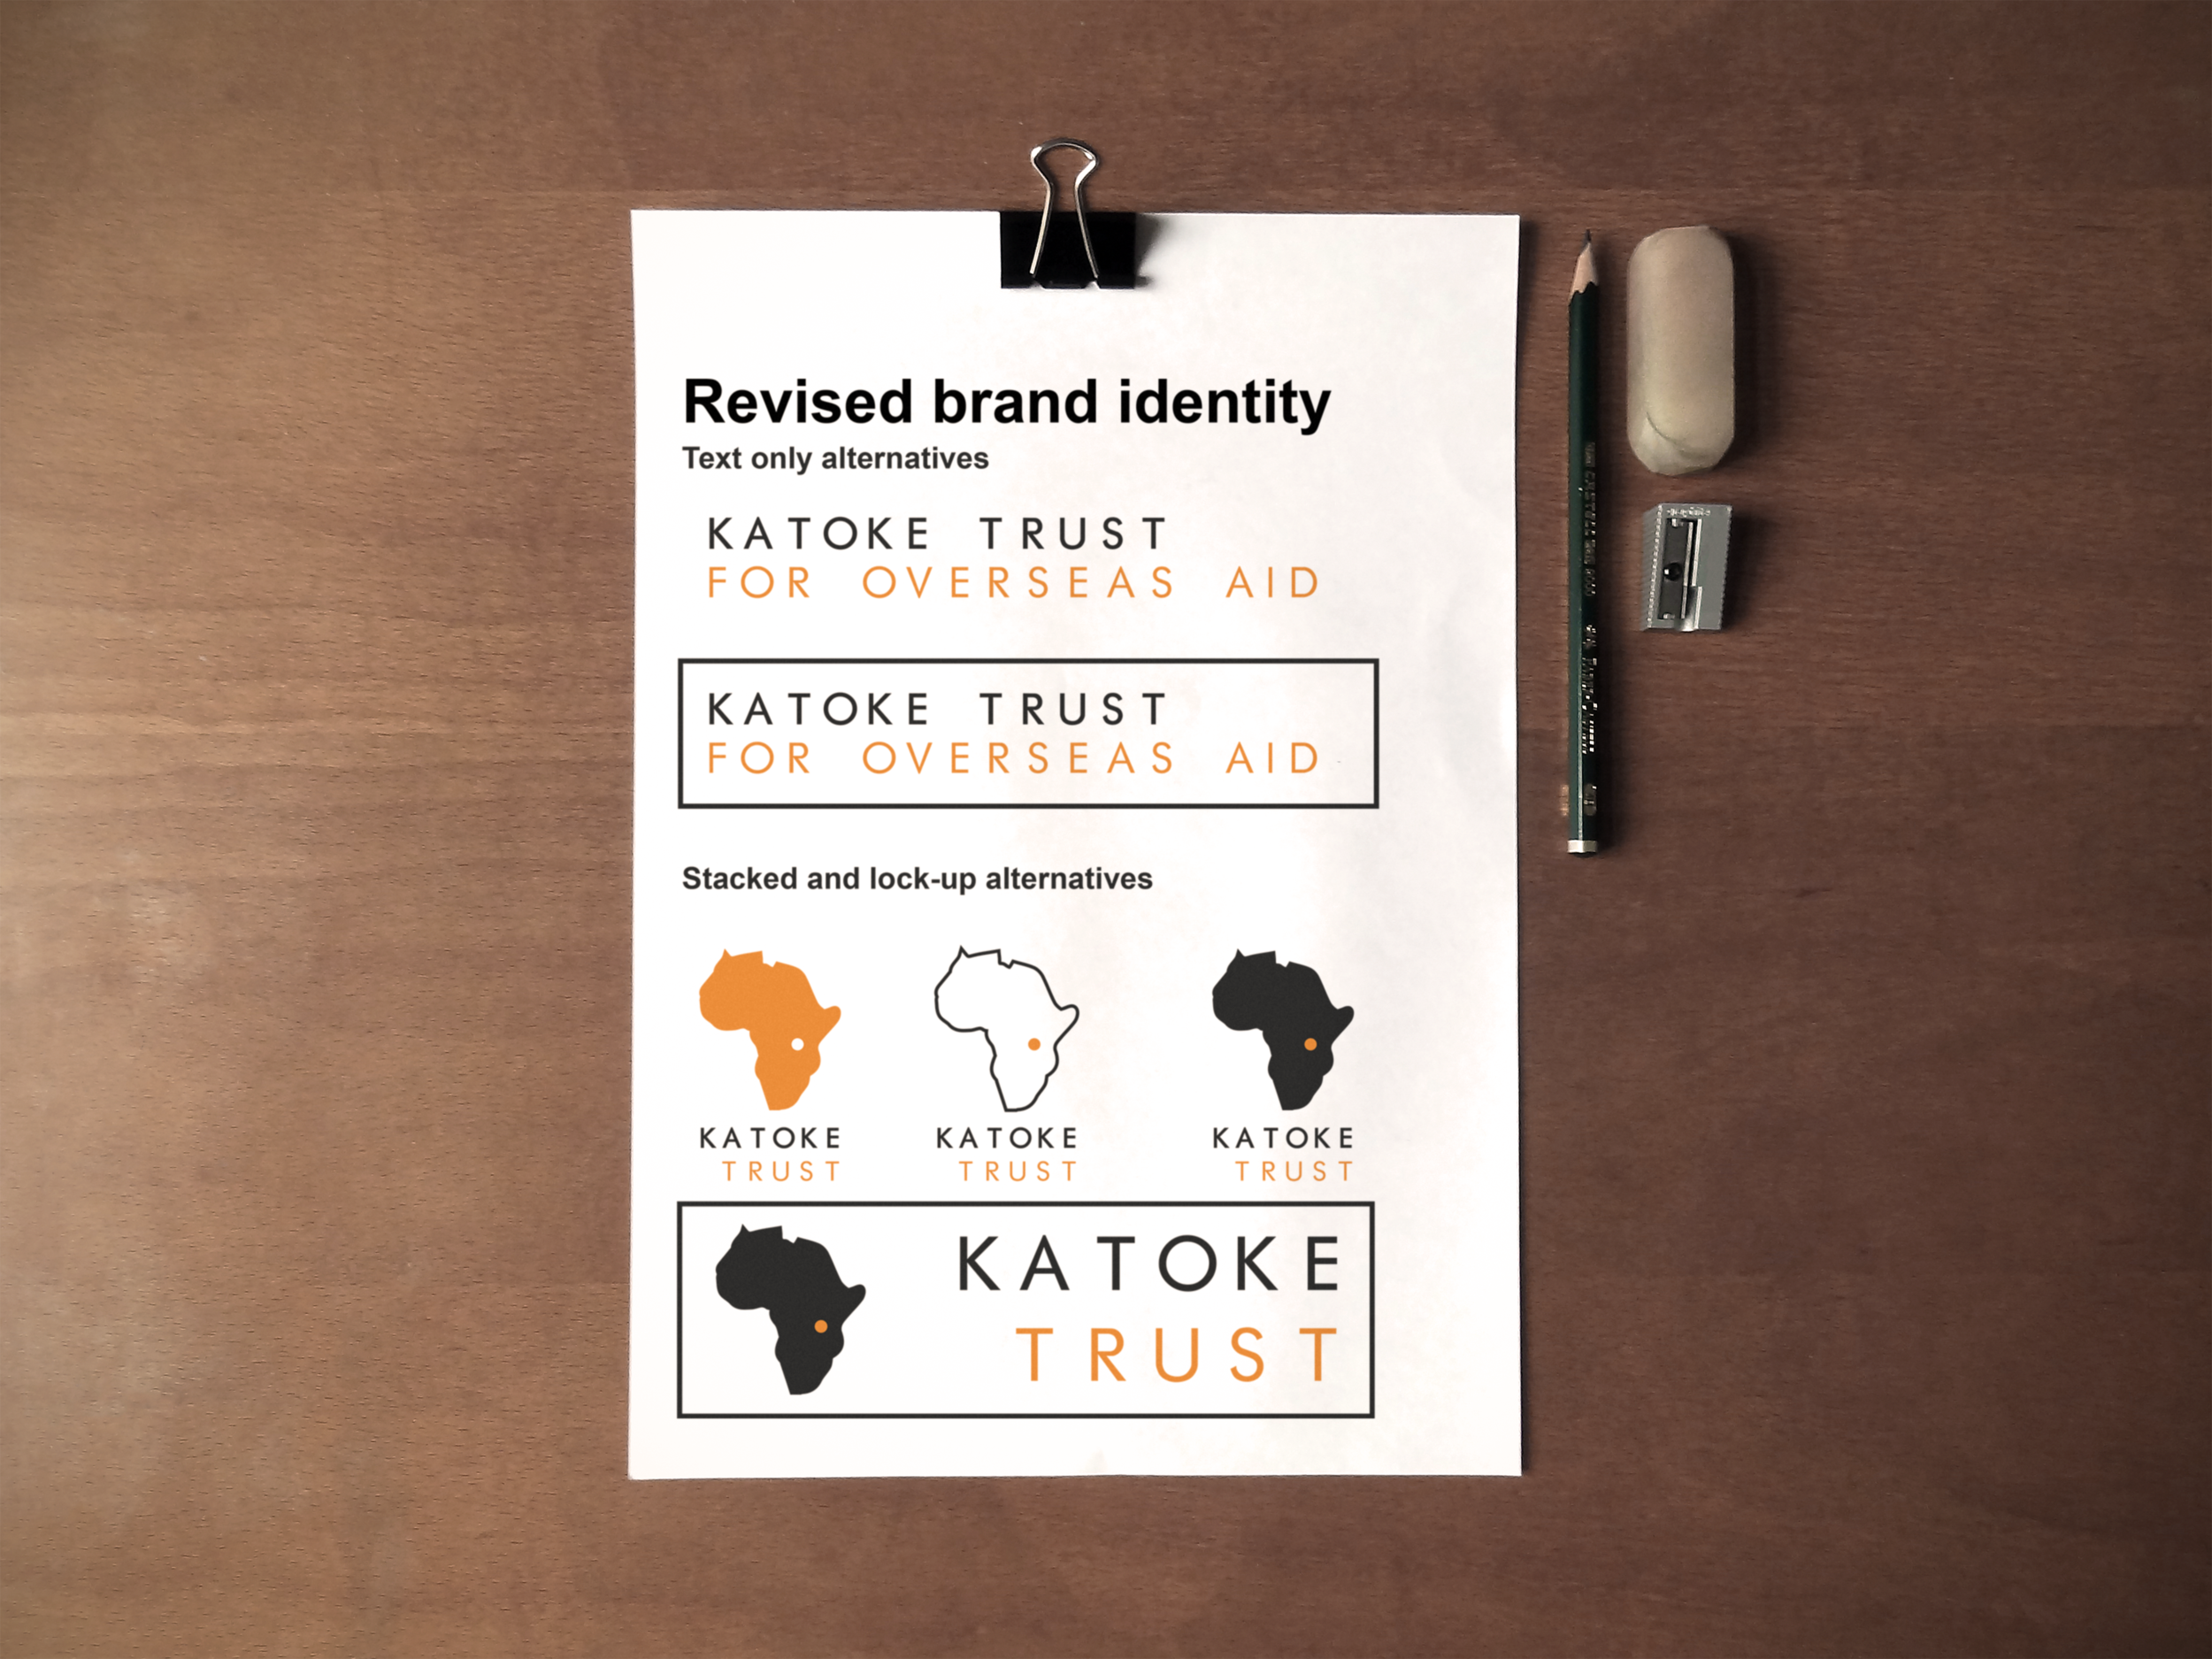 KATOKE TRUST - In 2018, we travelled to regional Tanzania and lived on-site at the Katoke Lweru the Katoke Lweru Secondary School which opened in April 2009. There are some 485 students from Forms 1-6 boarding at the school, 27+ teachers, administration, library and boarding staff. What we did:Personal interviews with students and staffObservational studiesPolicy writingBlog, photographic and film contentBrand refreshWebsite rebuild and UX strategyCommunications strategyMentoring